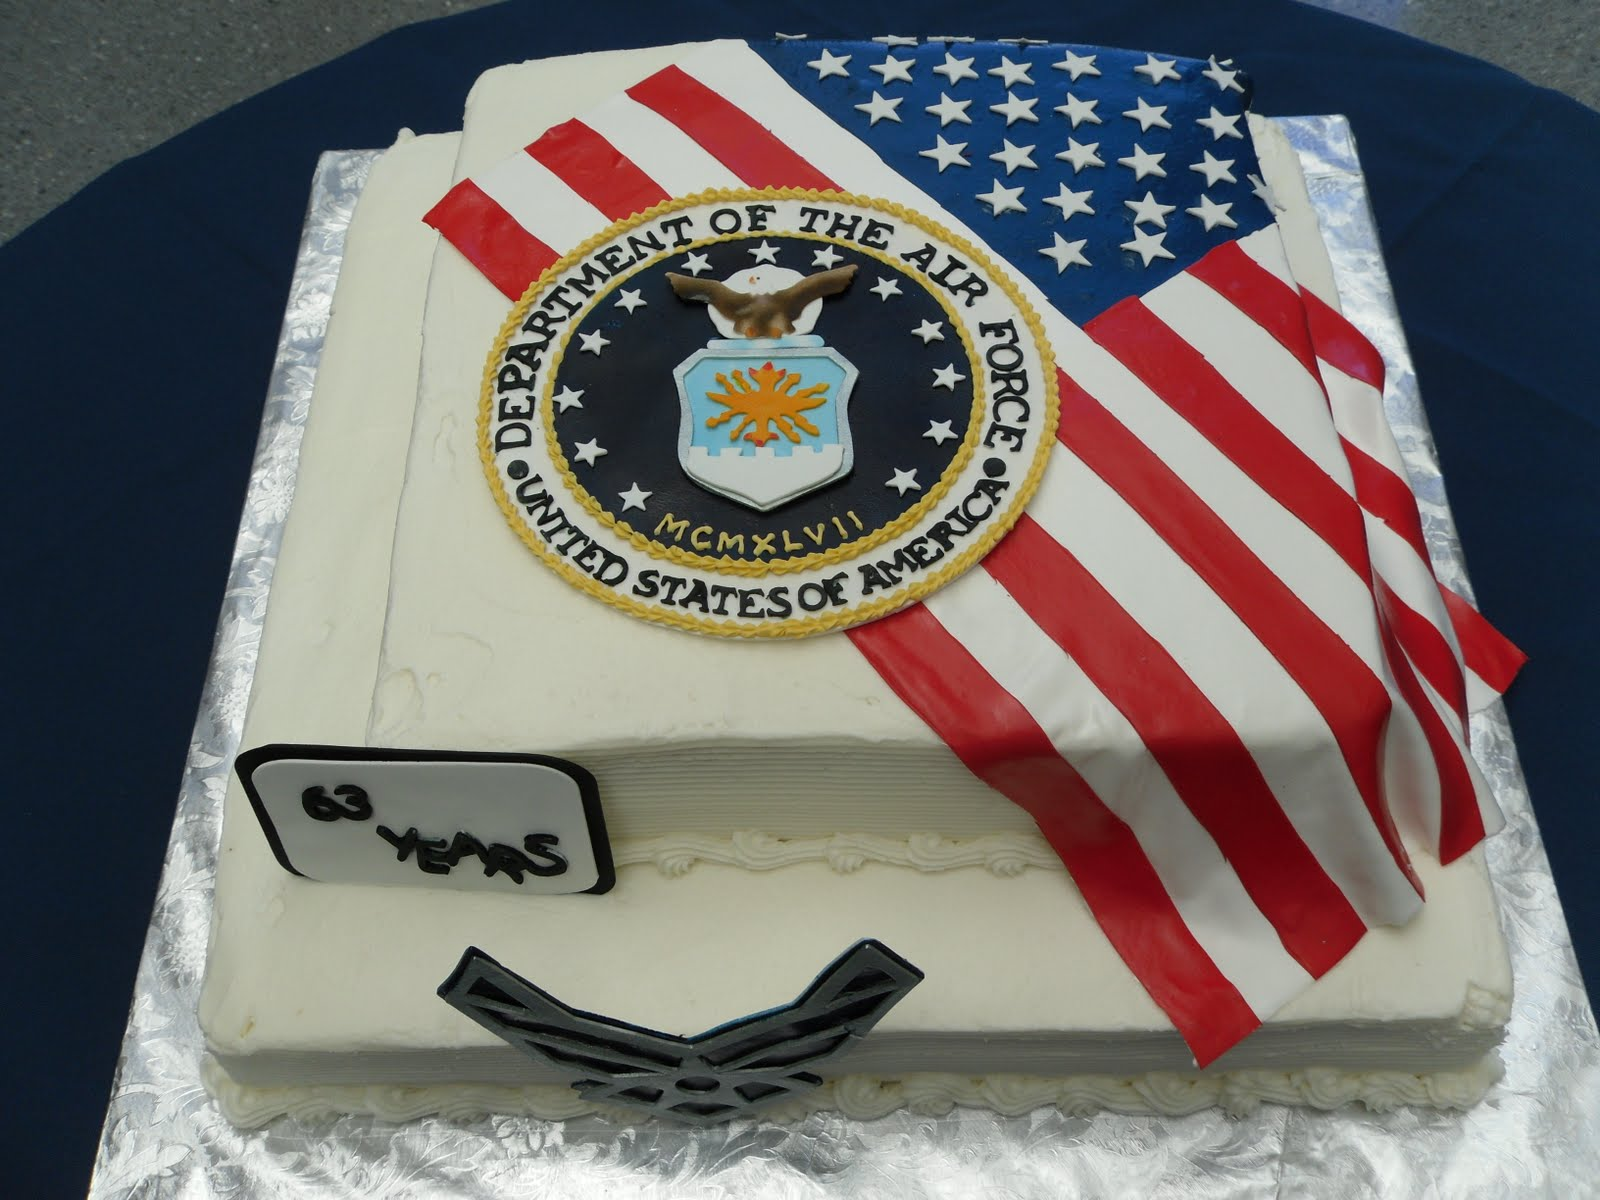 Cake concepts by cathy two flags two emblems different for Air force cakes decoration